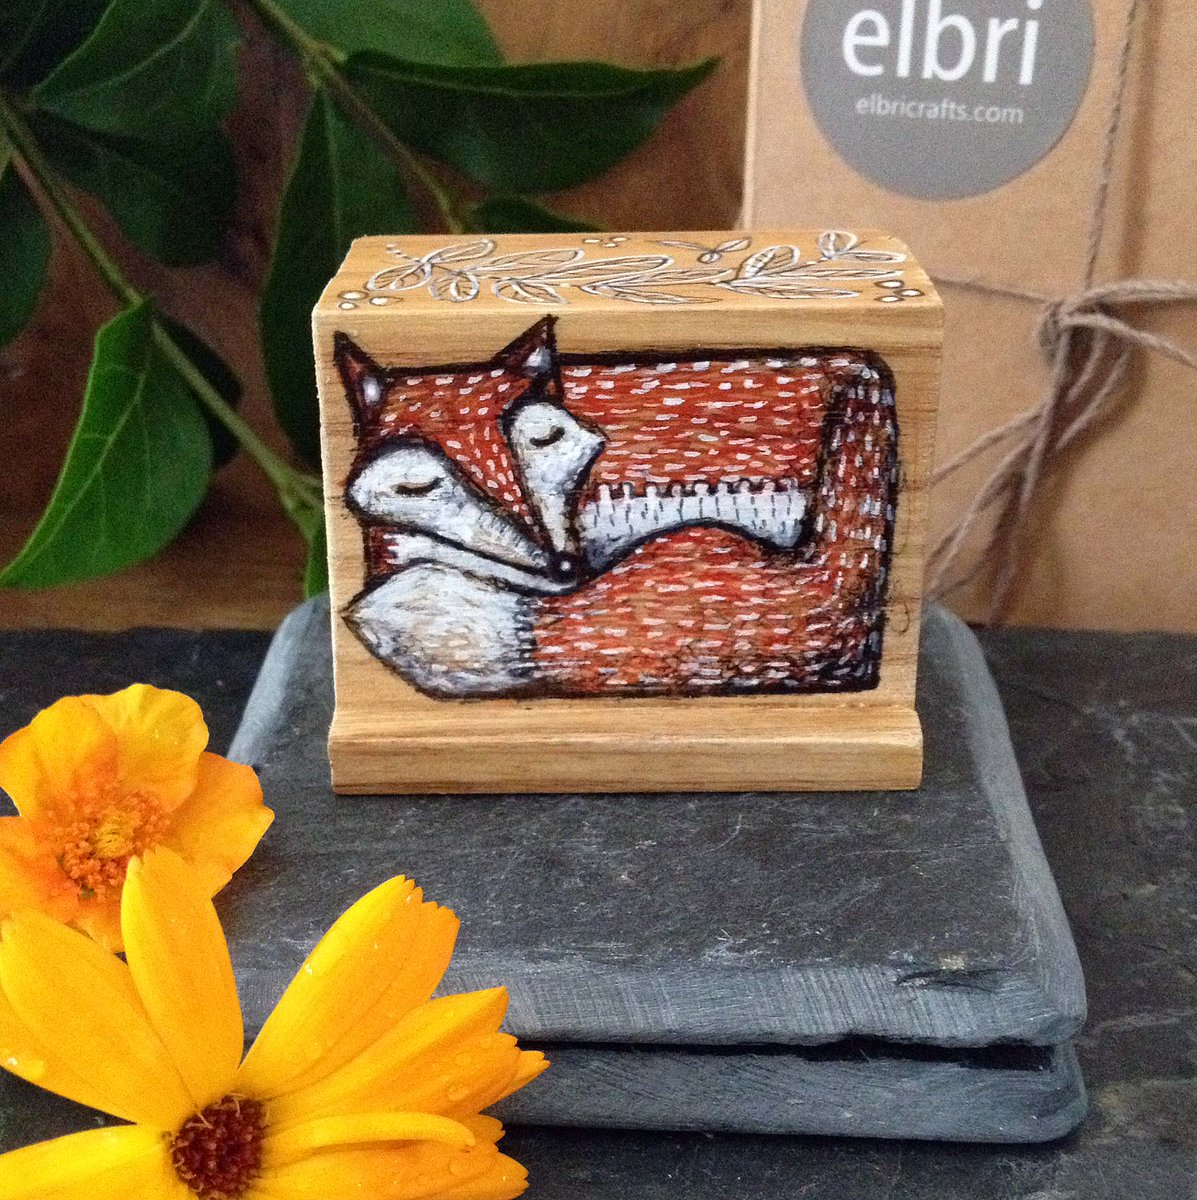 This little sleeping Fox Blox has just sold, but we have 2 others waiting for a new home. Hand painted onto blocks of Scottish ash, they make the cutest little gifts. #womaninbiz #wnukrt #foxes #FirstTmaster #RTmeBB #UKCraft   https://www. etsy.com/uk/listing/696 799220/hand-painted-fox-blox-wooden-art-block?ref=shop_home_active_7  … <br>http://pic.twitter.com/05W1Cftoh1